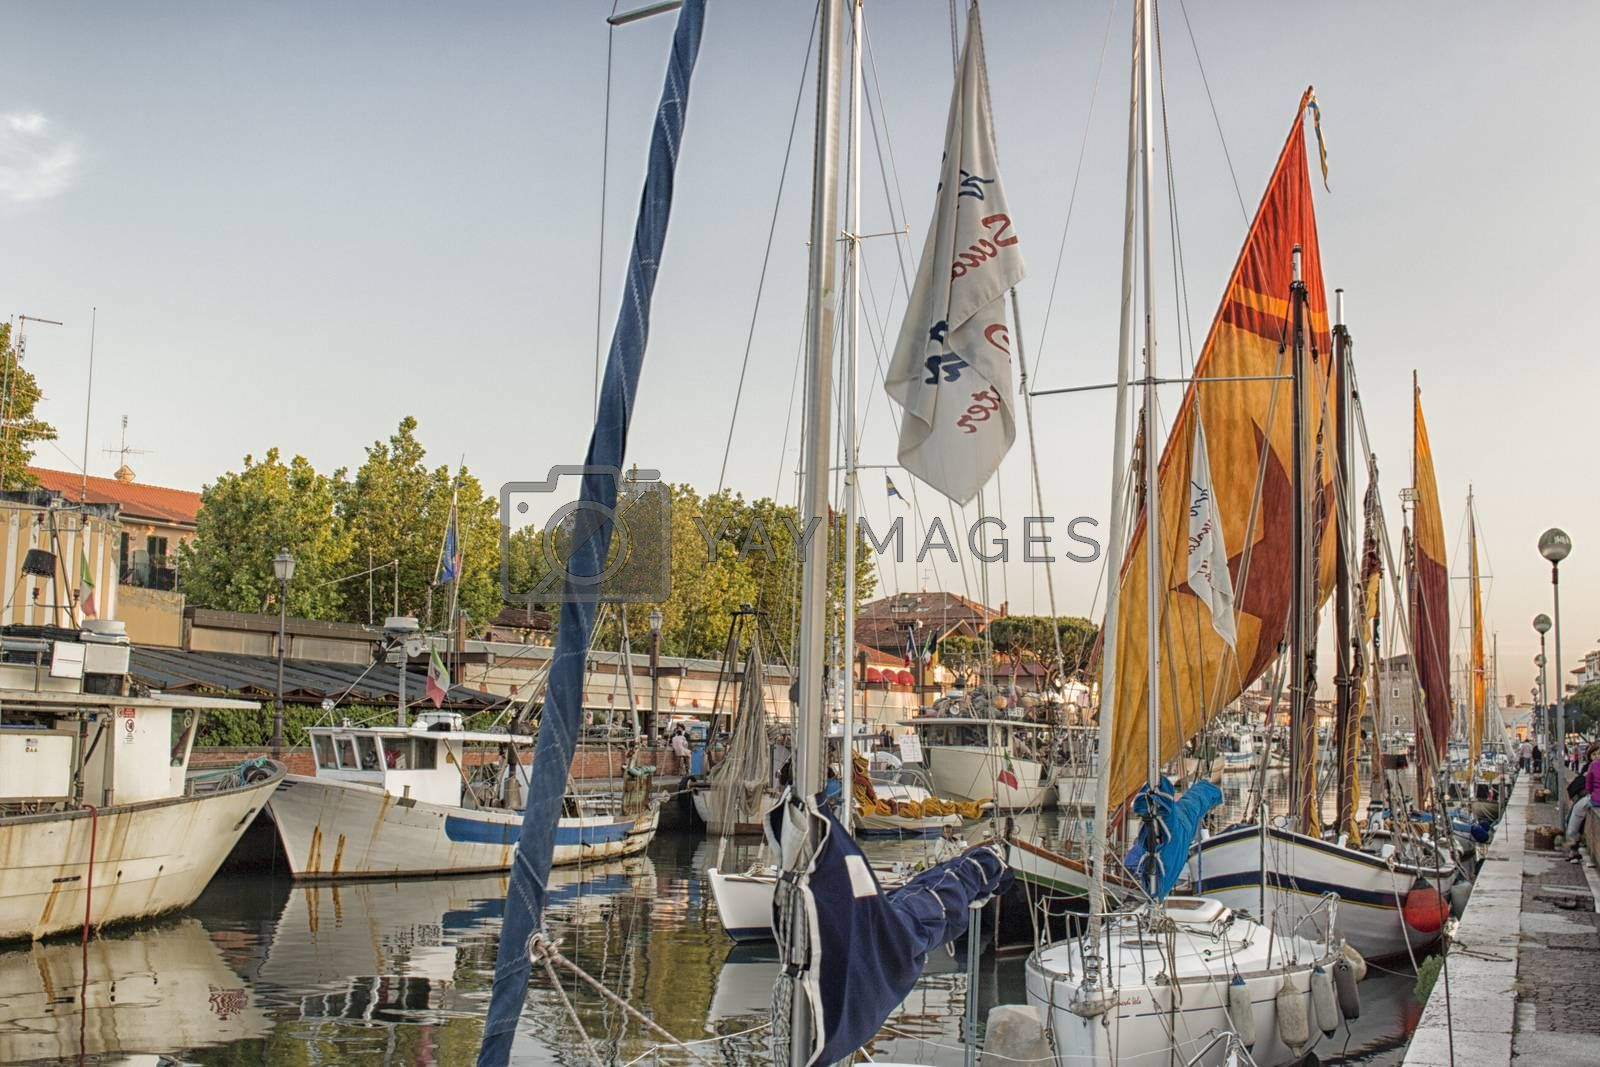 Sailing and engine boats moored in the harbour channel of Cervia in Northern Italy on the Adriatic Sea